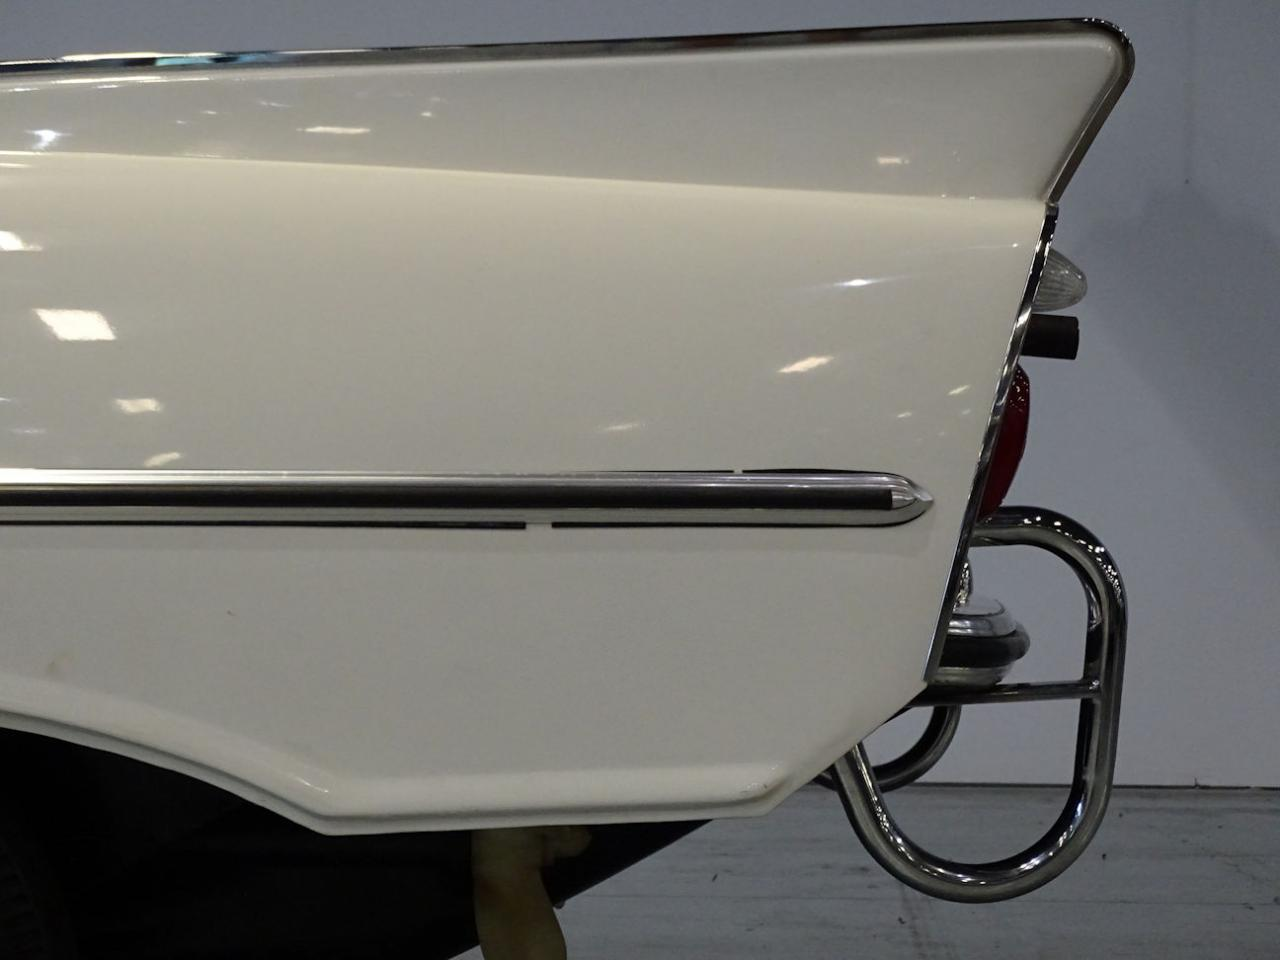 Large Picture of Classic '67 Amphicar 770 - $59,000.00 Offered by Gateway Classic Cars - Orlando - LI53